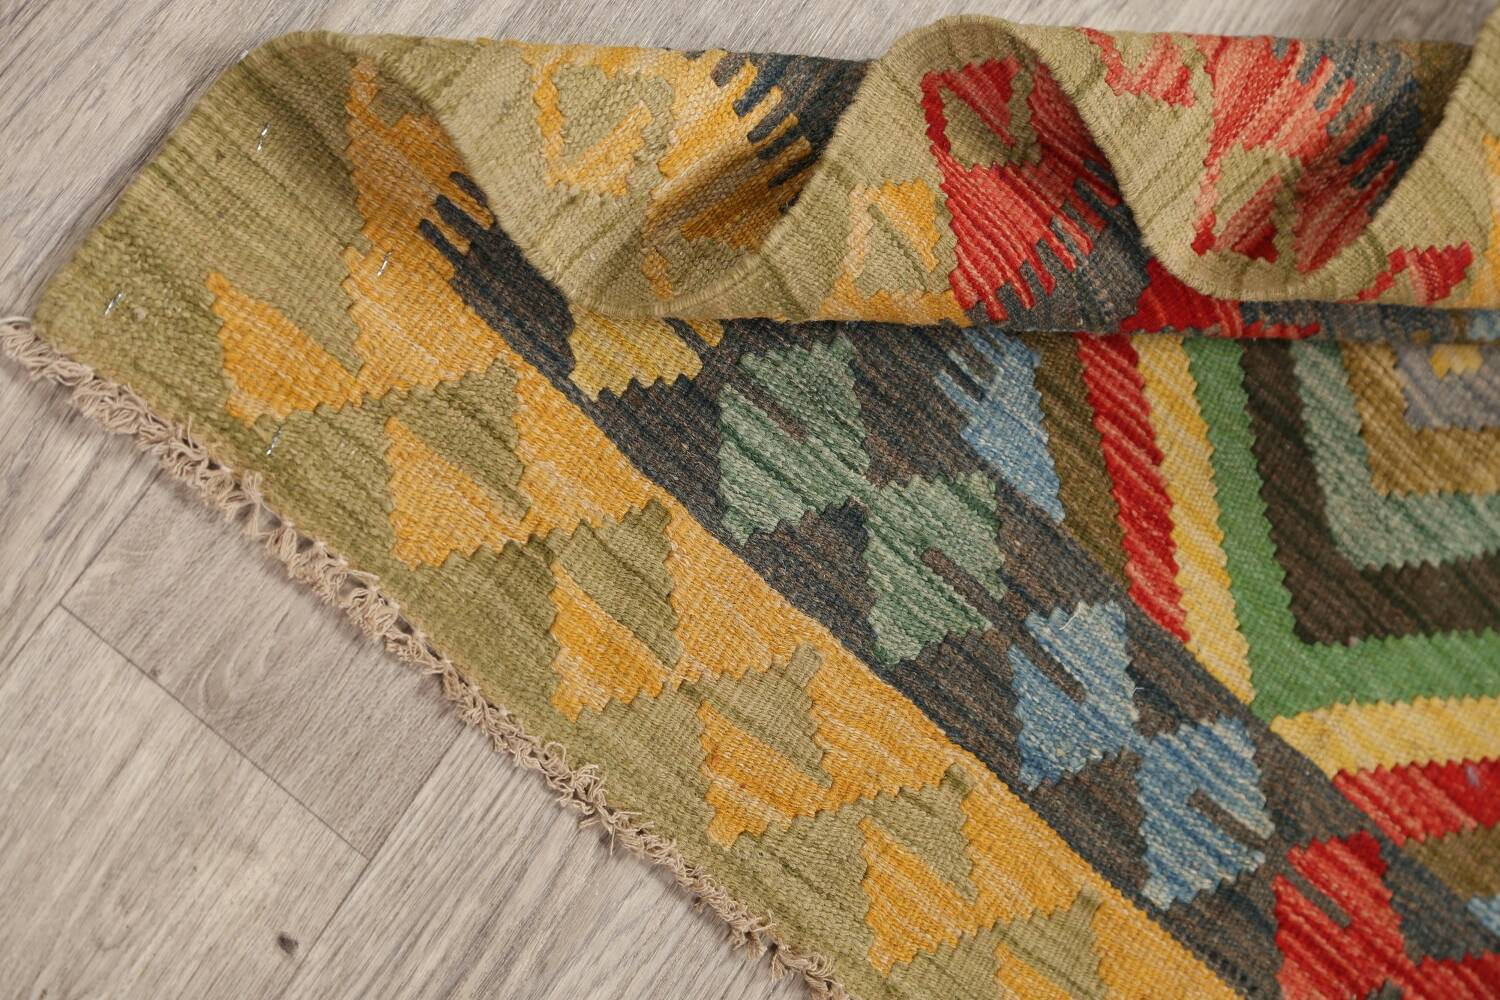 South-Western Reversible Kilim Oriental Area Rug 3x3 Square image 14